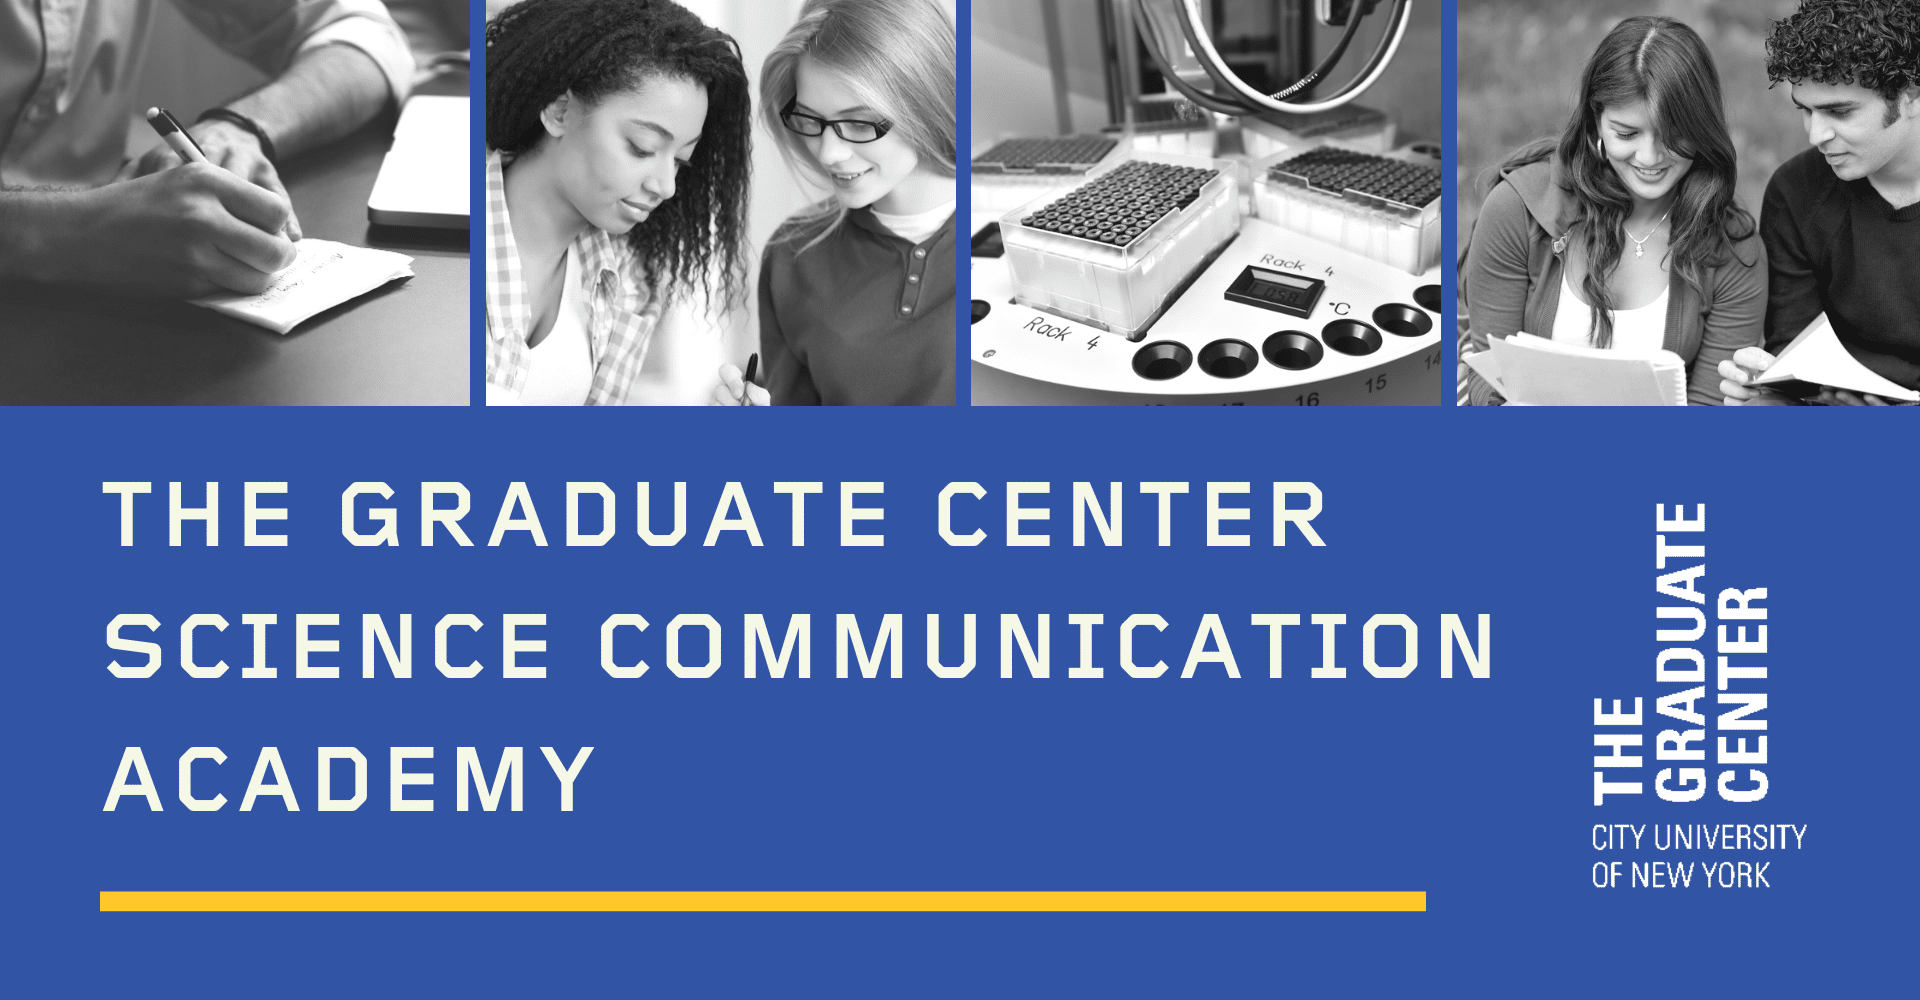 "Banner image: 4 black and white photos of students, researchers and research equipment, with the title ""The Graduate Center Science Communication Academy"" and The Graduate Center logo"